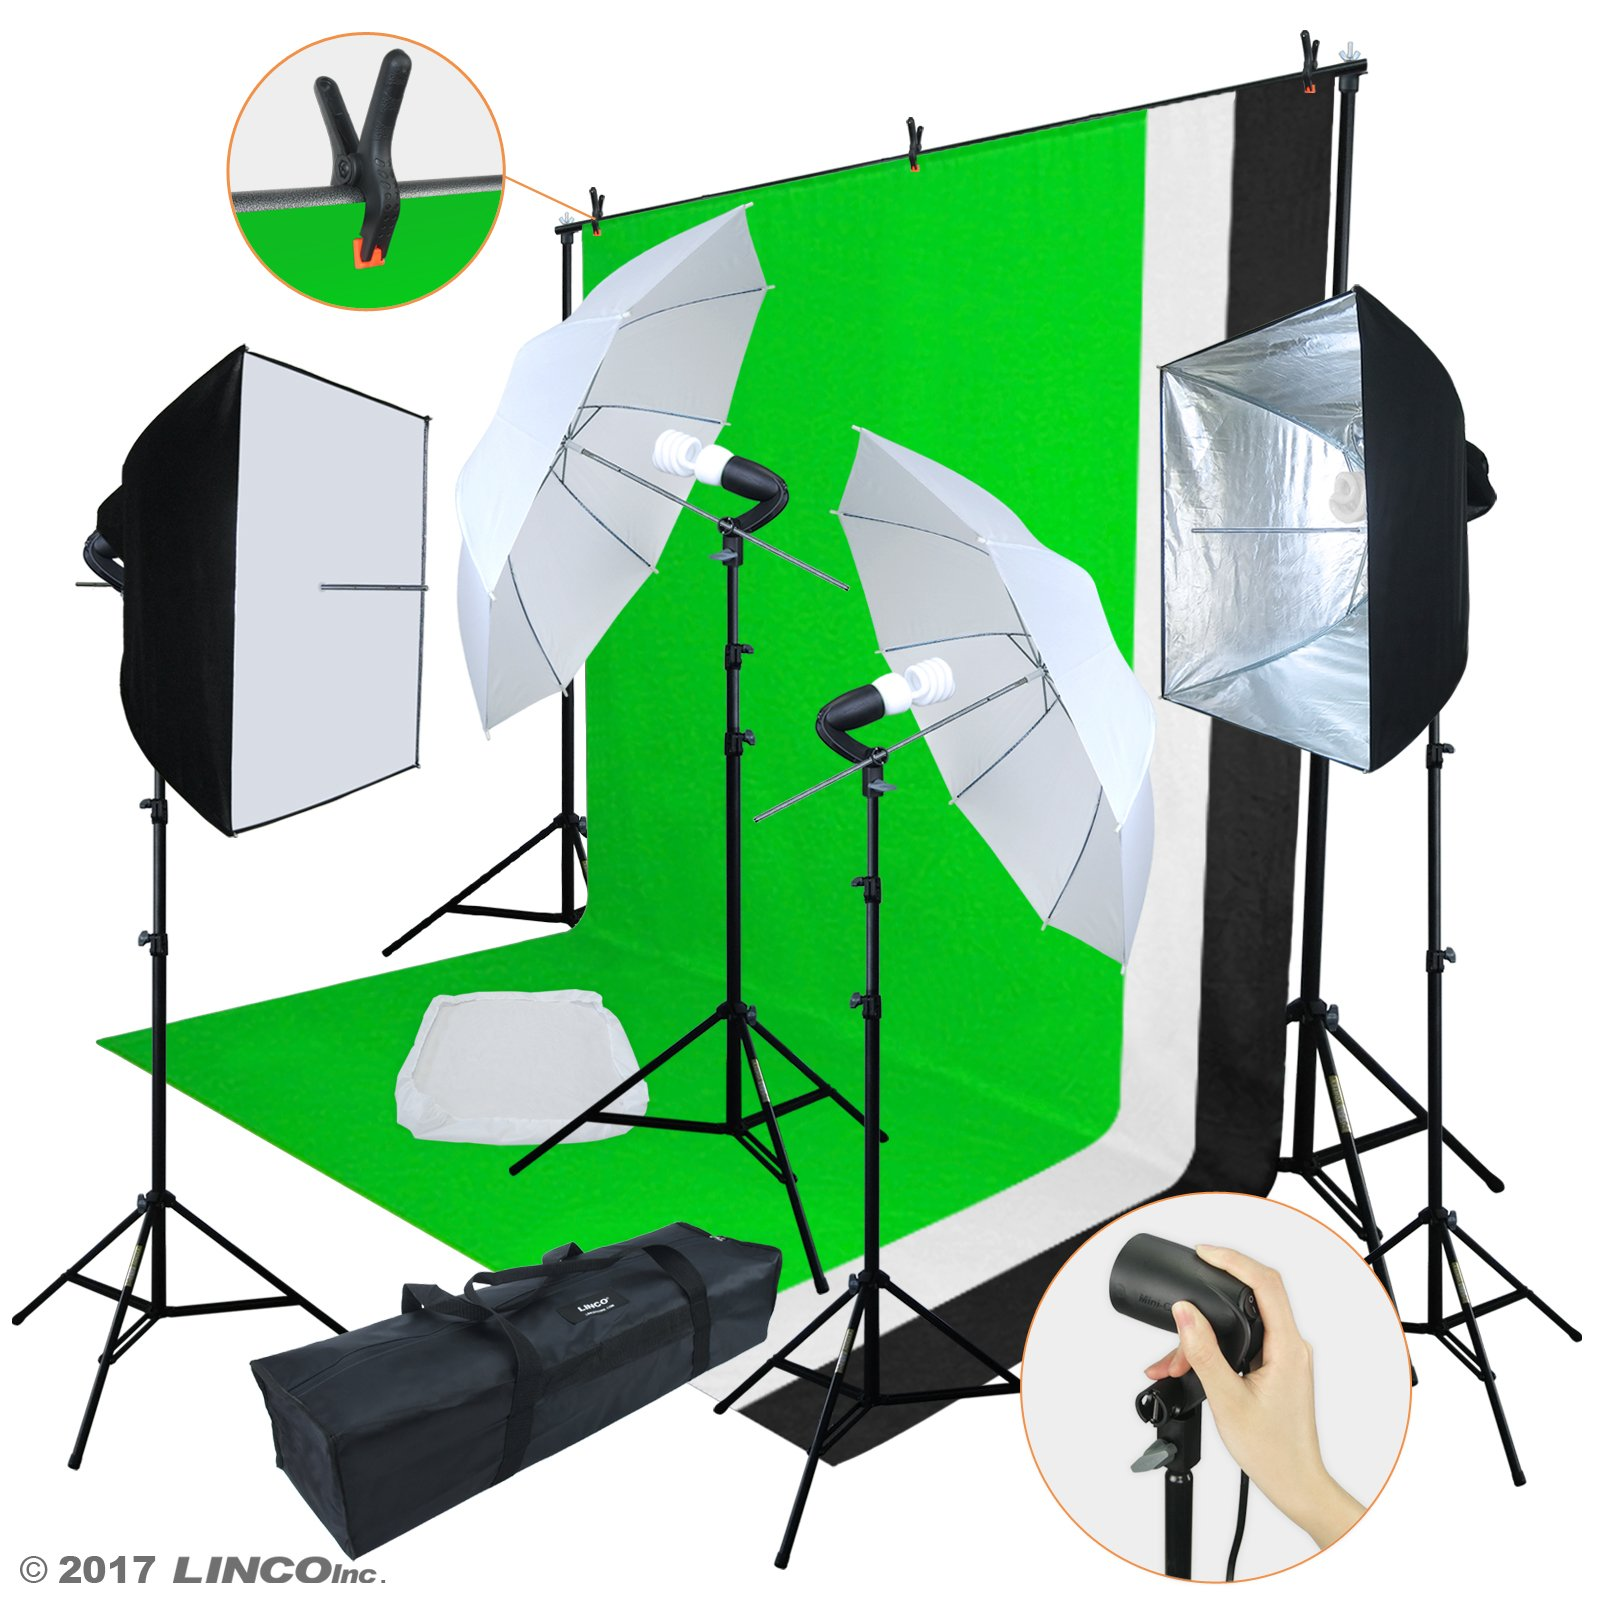 Linco Lincostore Photo Video Studio Light Kit AM169 - Including 3 Color Backdrops (Black/White/Green) Background Screen by Linco